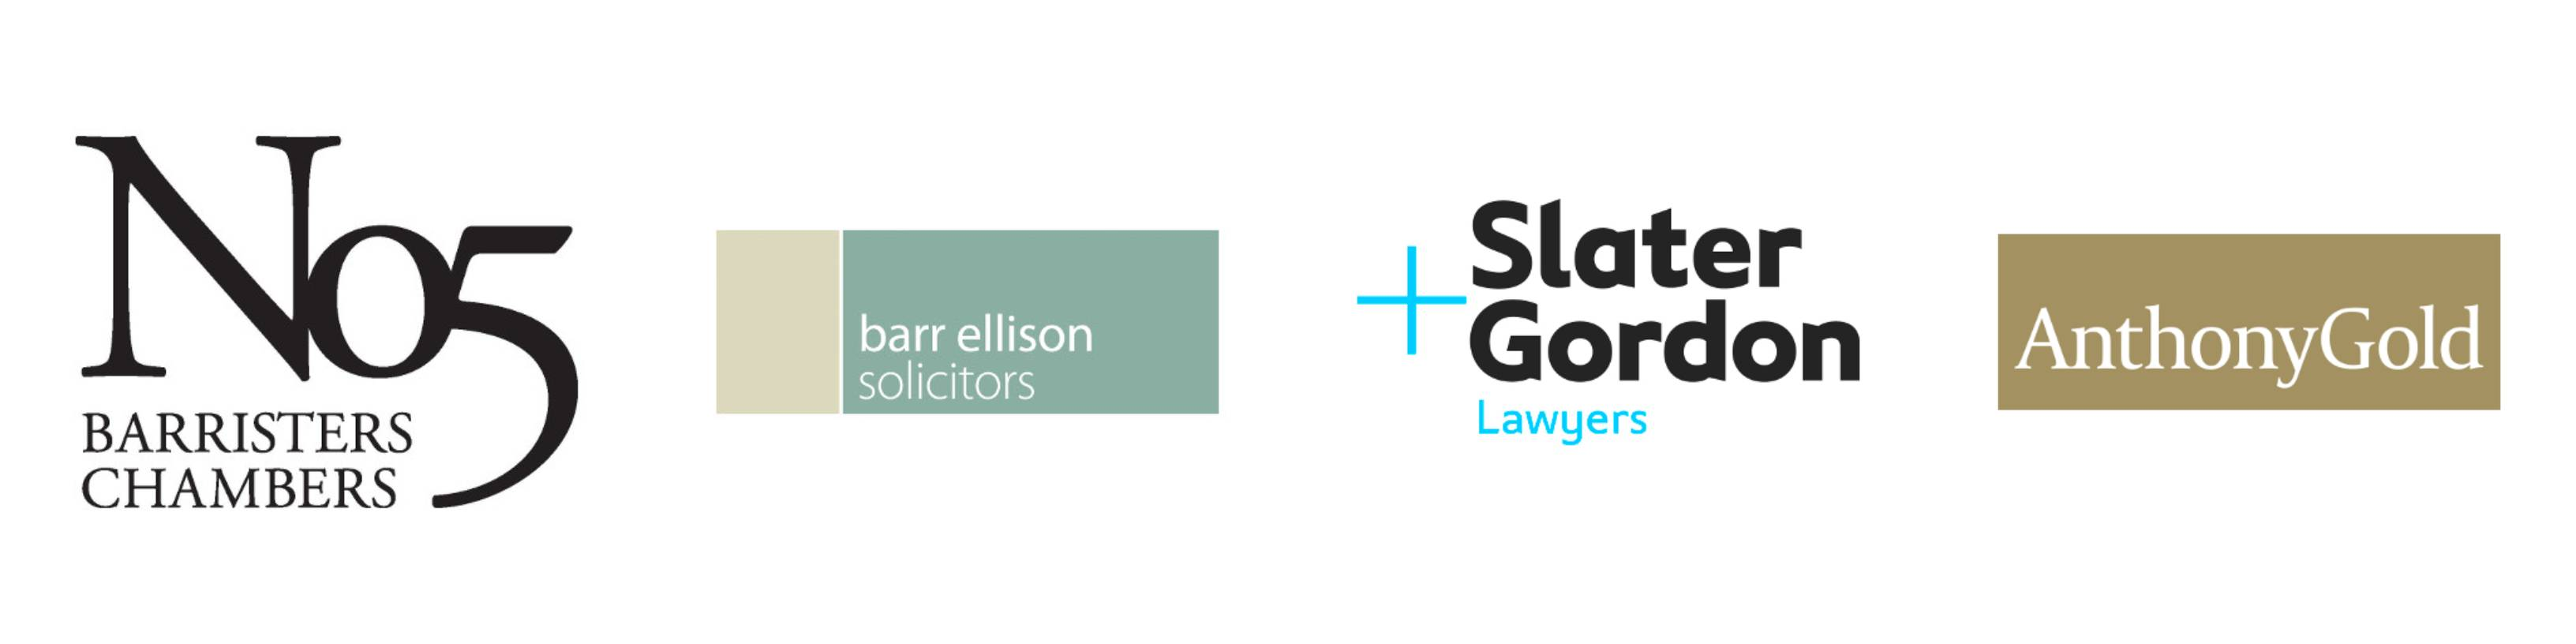 The Headway Annual Awards 2018 is kindly sponsored by No5 Barristers Chambers, Barr Ellison Solicitors, Slater and Gordon Lawyers, Anthony Gold